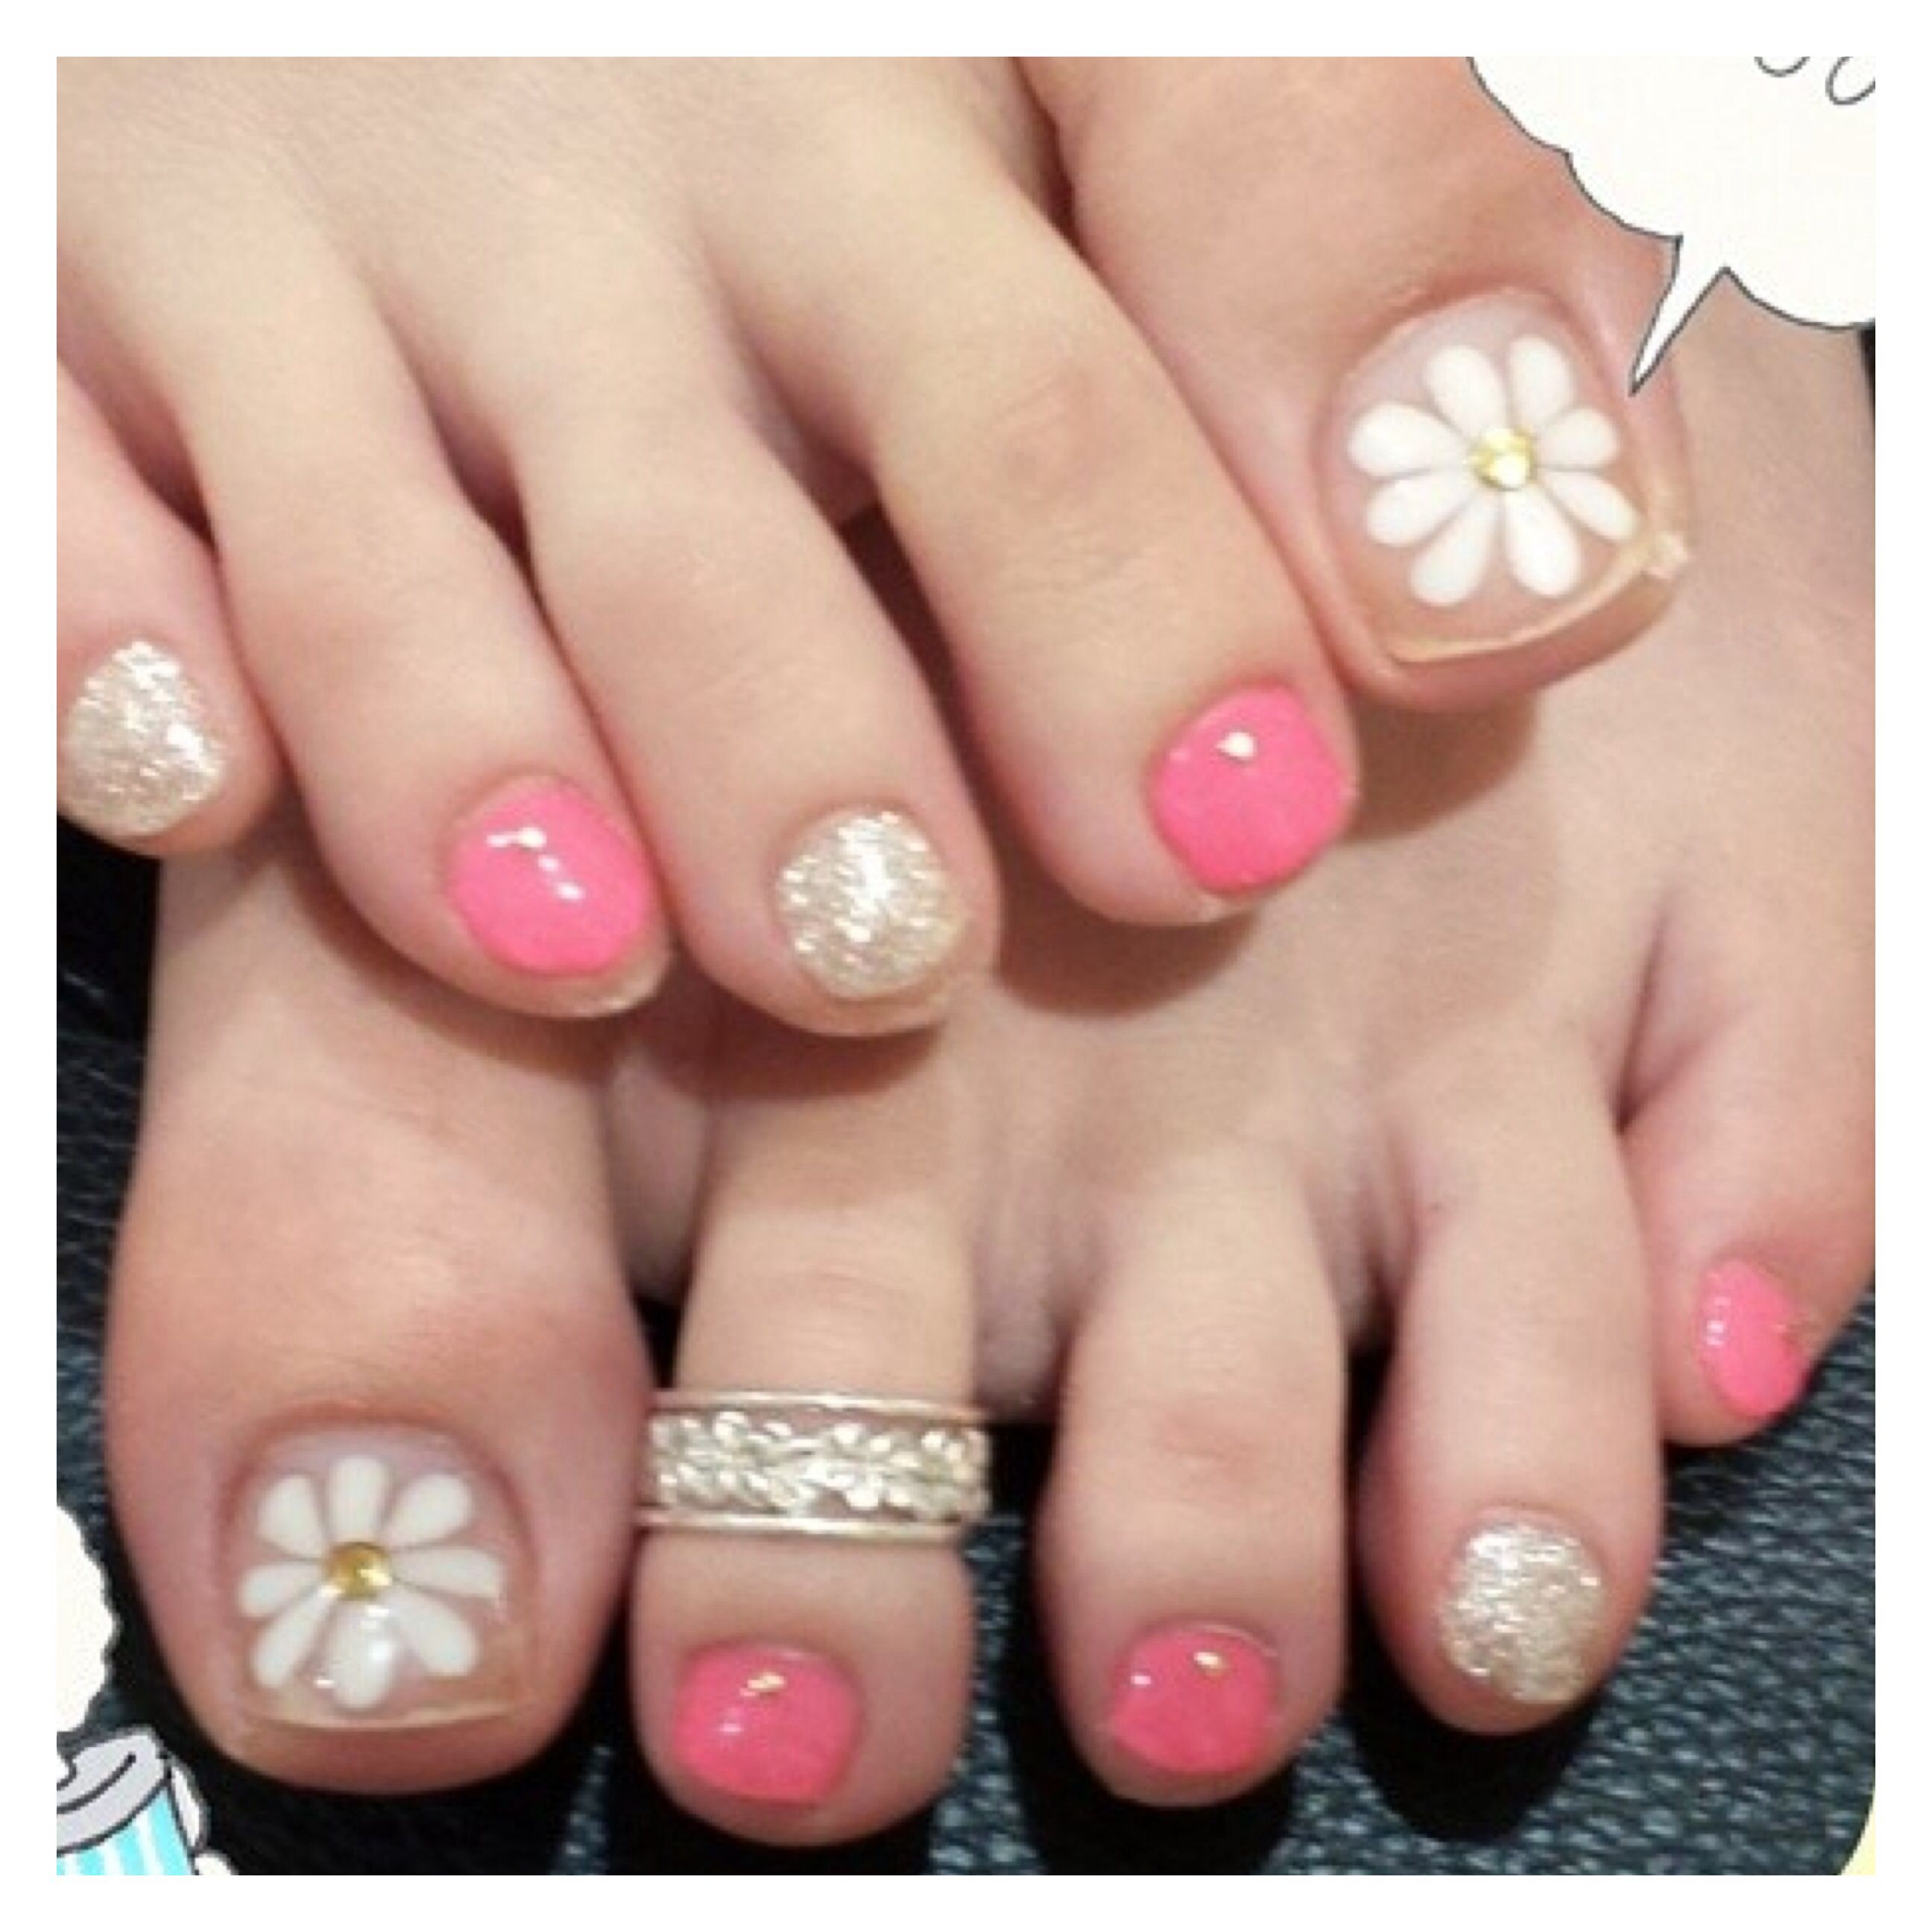 Pin by abe on toe nails design pedicure pinterest nail pedicure designstoe prinsesfo Choice Image